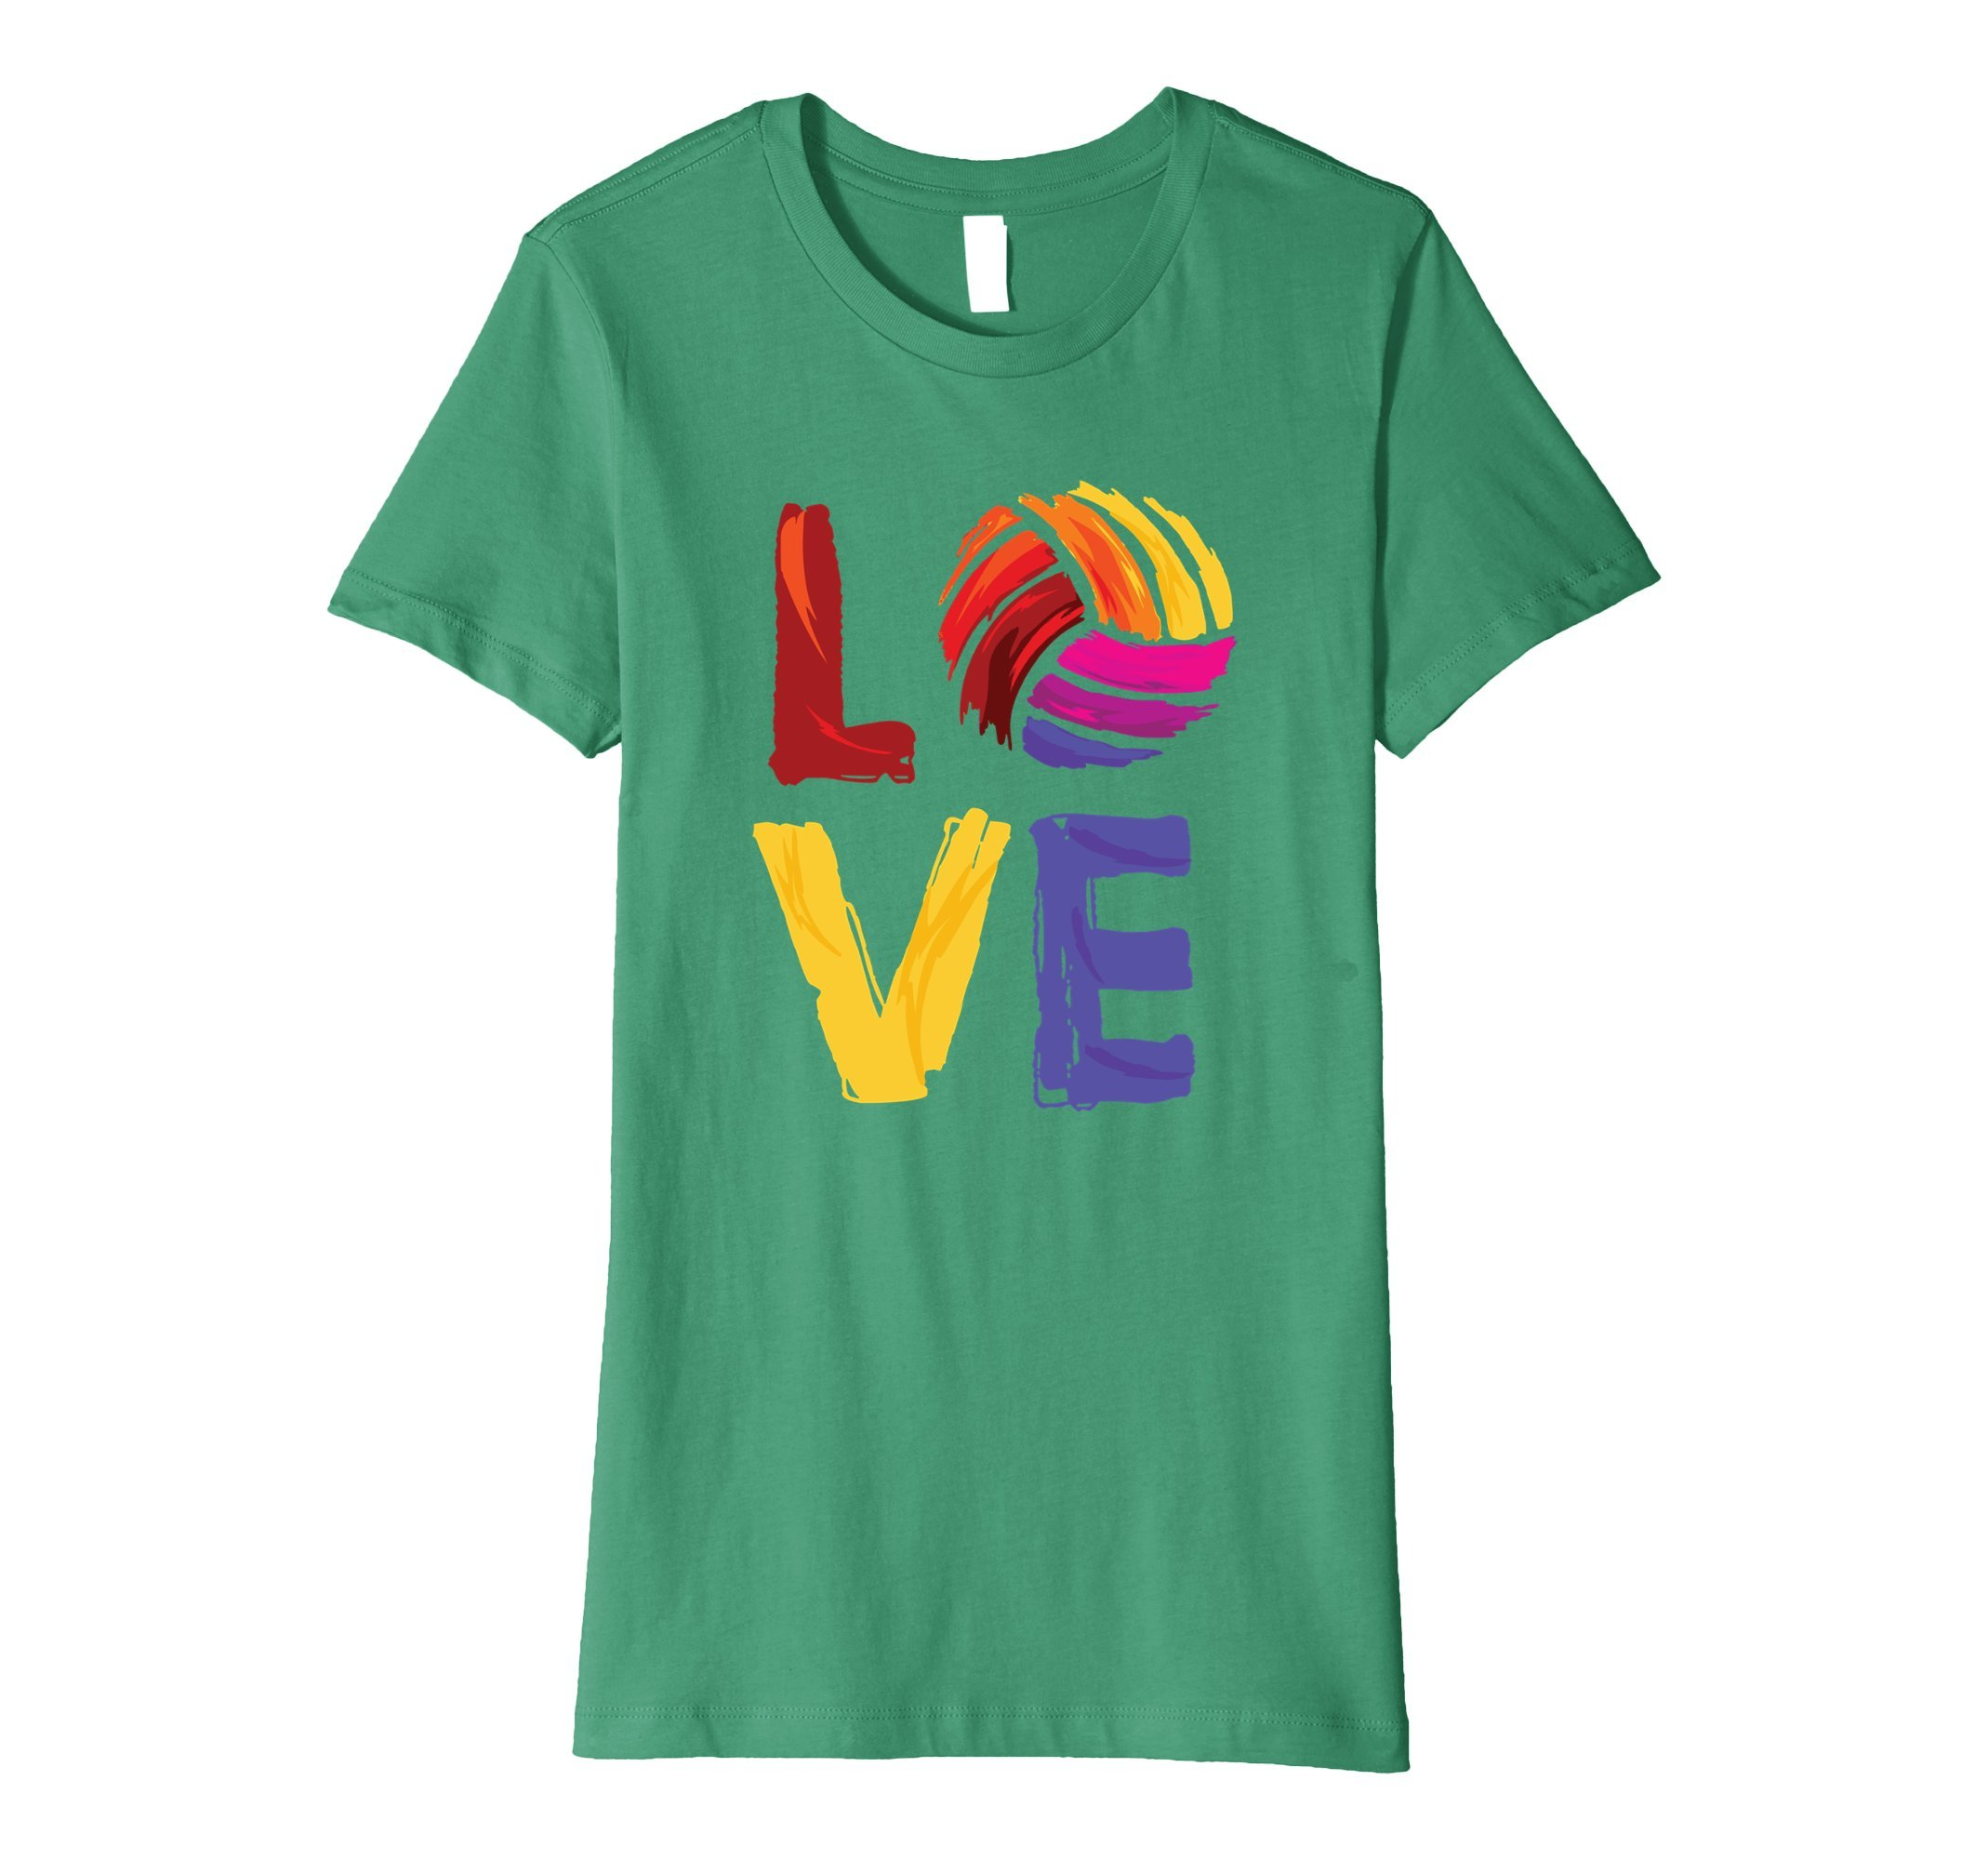 Womens Love Volleyball Shirt Small Kelly Green